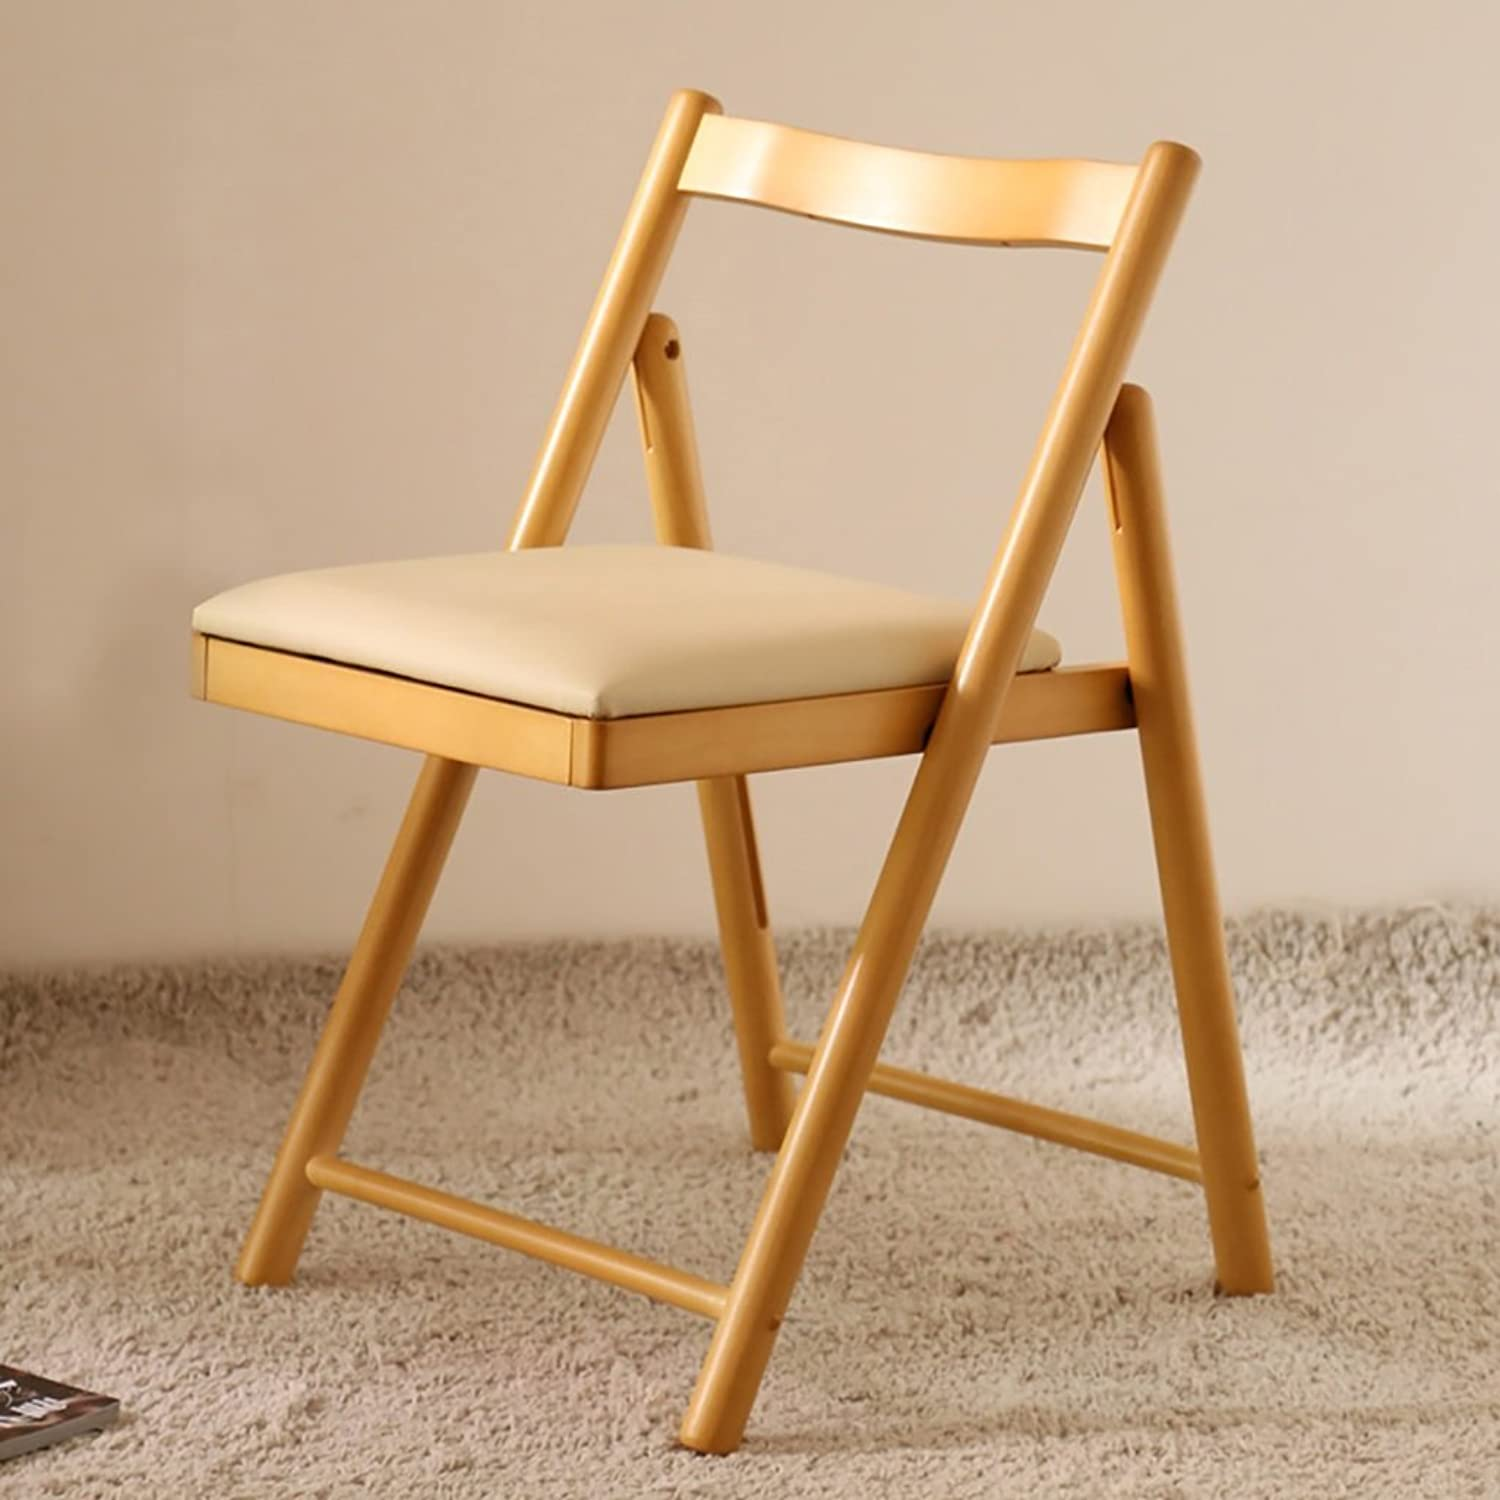 FENGTAIQIAN Chair dining chair solid wood backrest adult home niture chair folding chair  small stool (color   C)